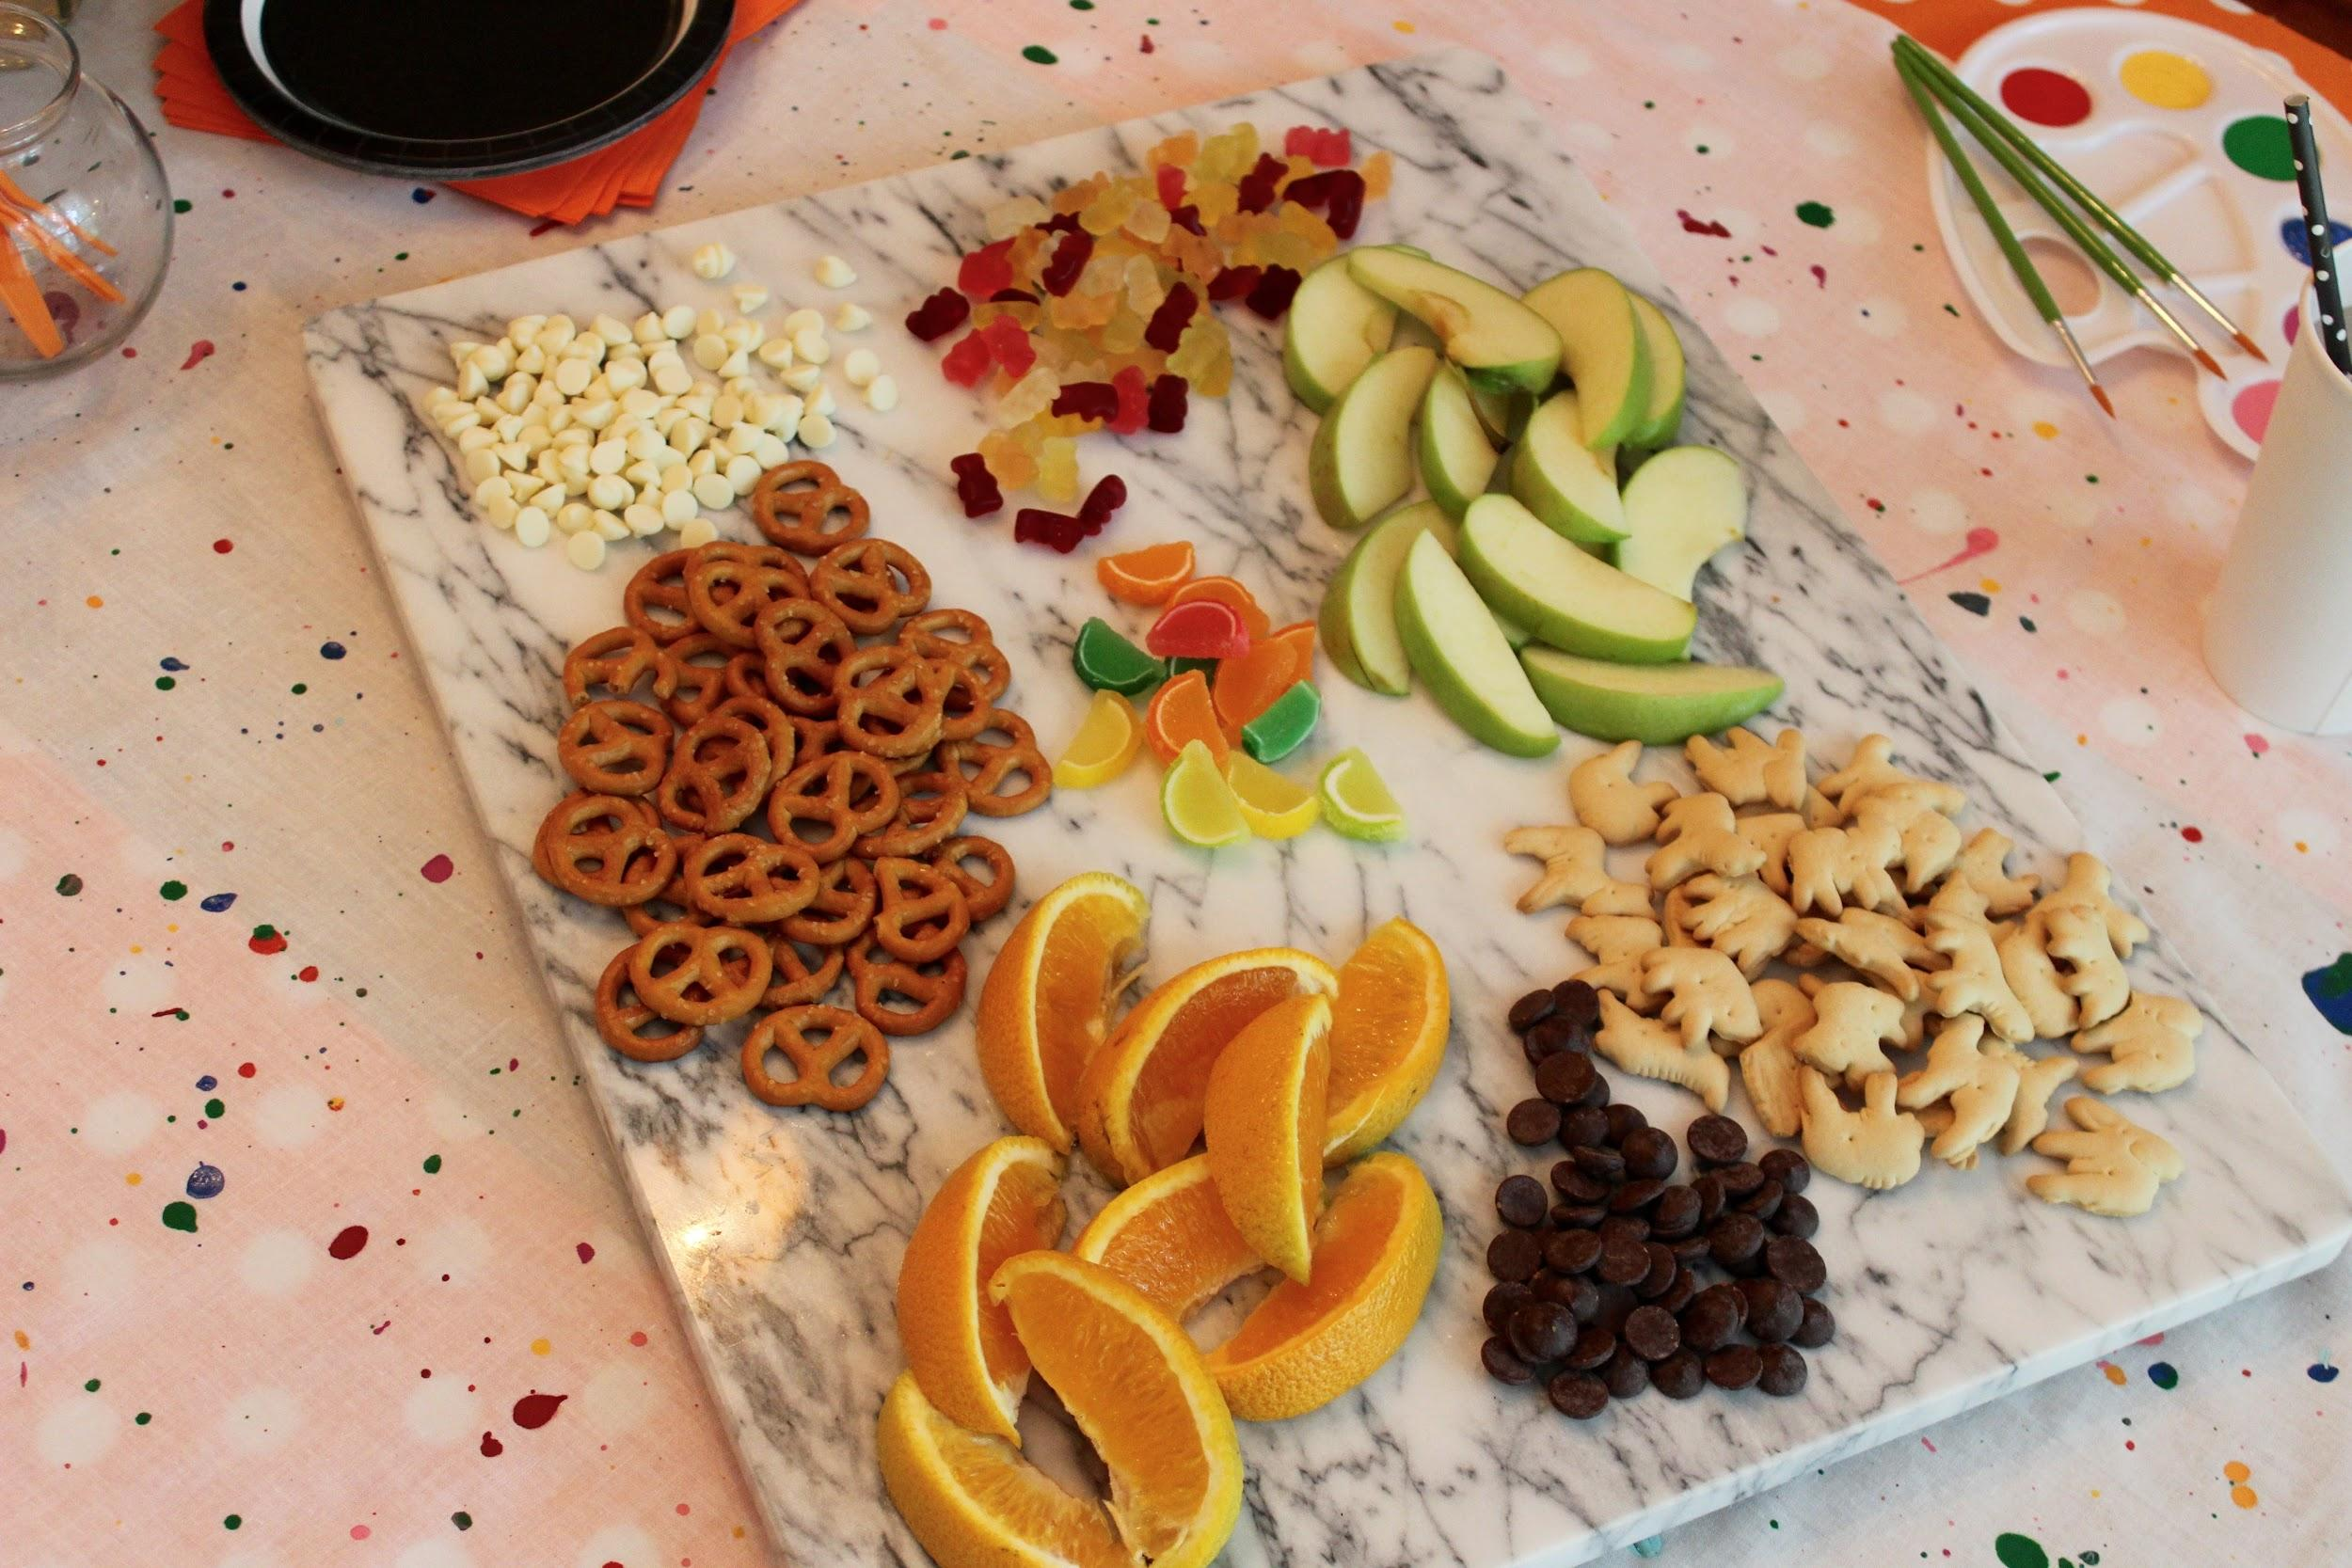 autumn party snacks candy oranges apples chocolate chips and pretzels